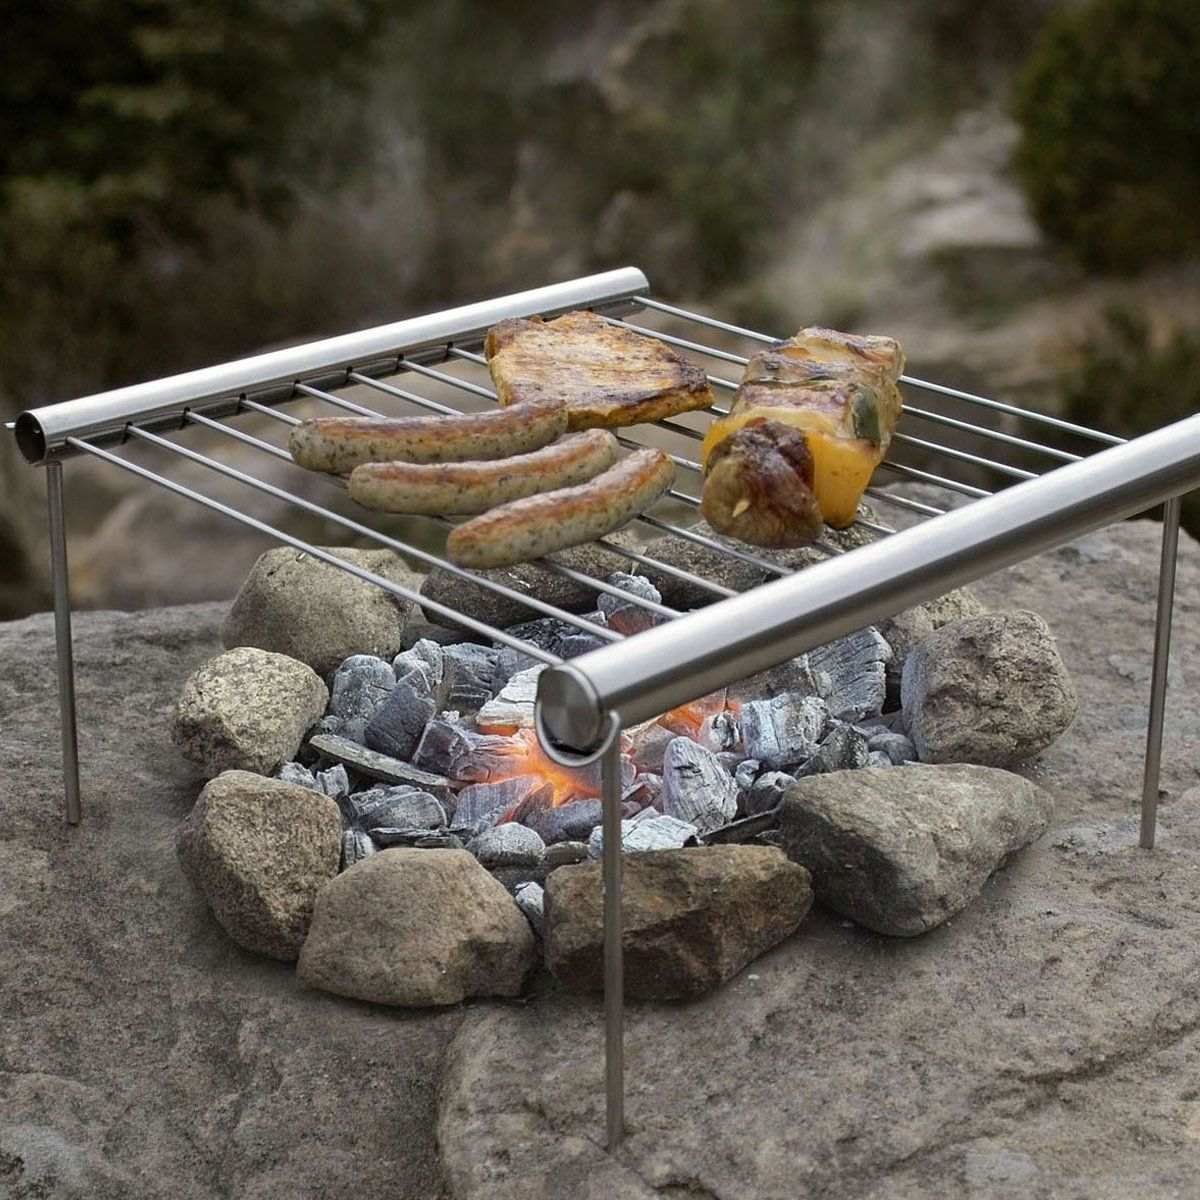 Pin by RockSide on Adventure (With images) Camping grill